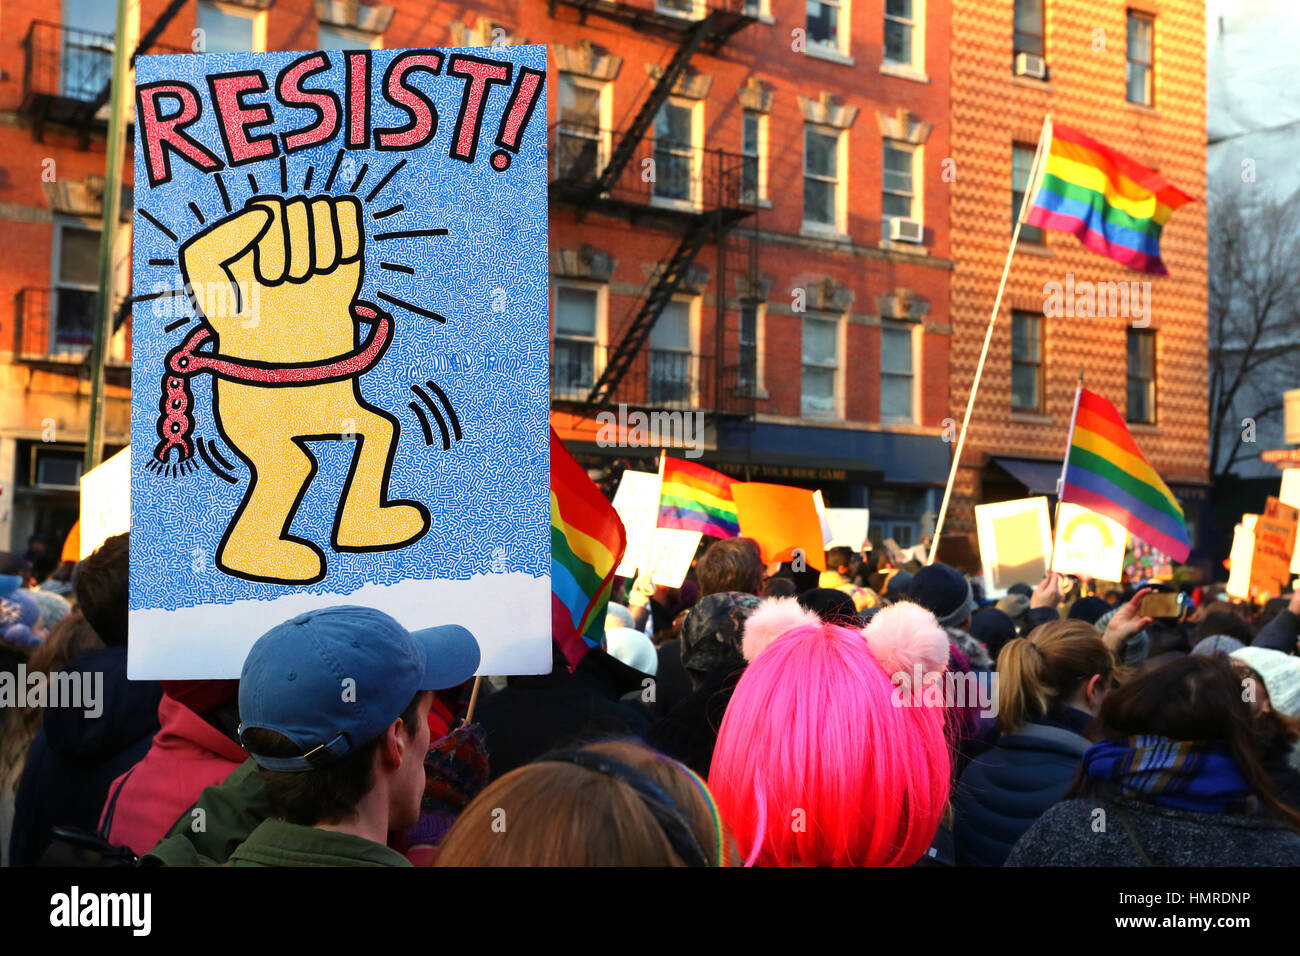 New York, United States. 04th Feb, 2017. New York, USA. 4th February, 2017. A person holds a Keith Haring inspired - Stock Image